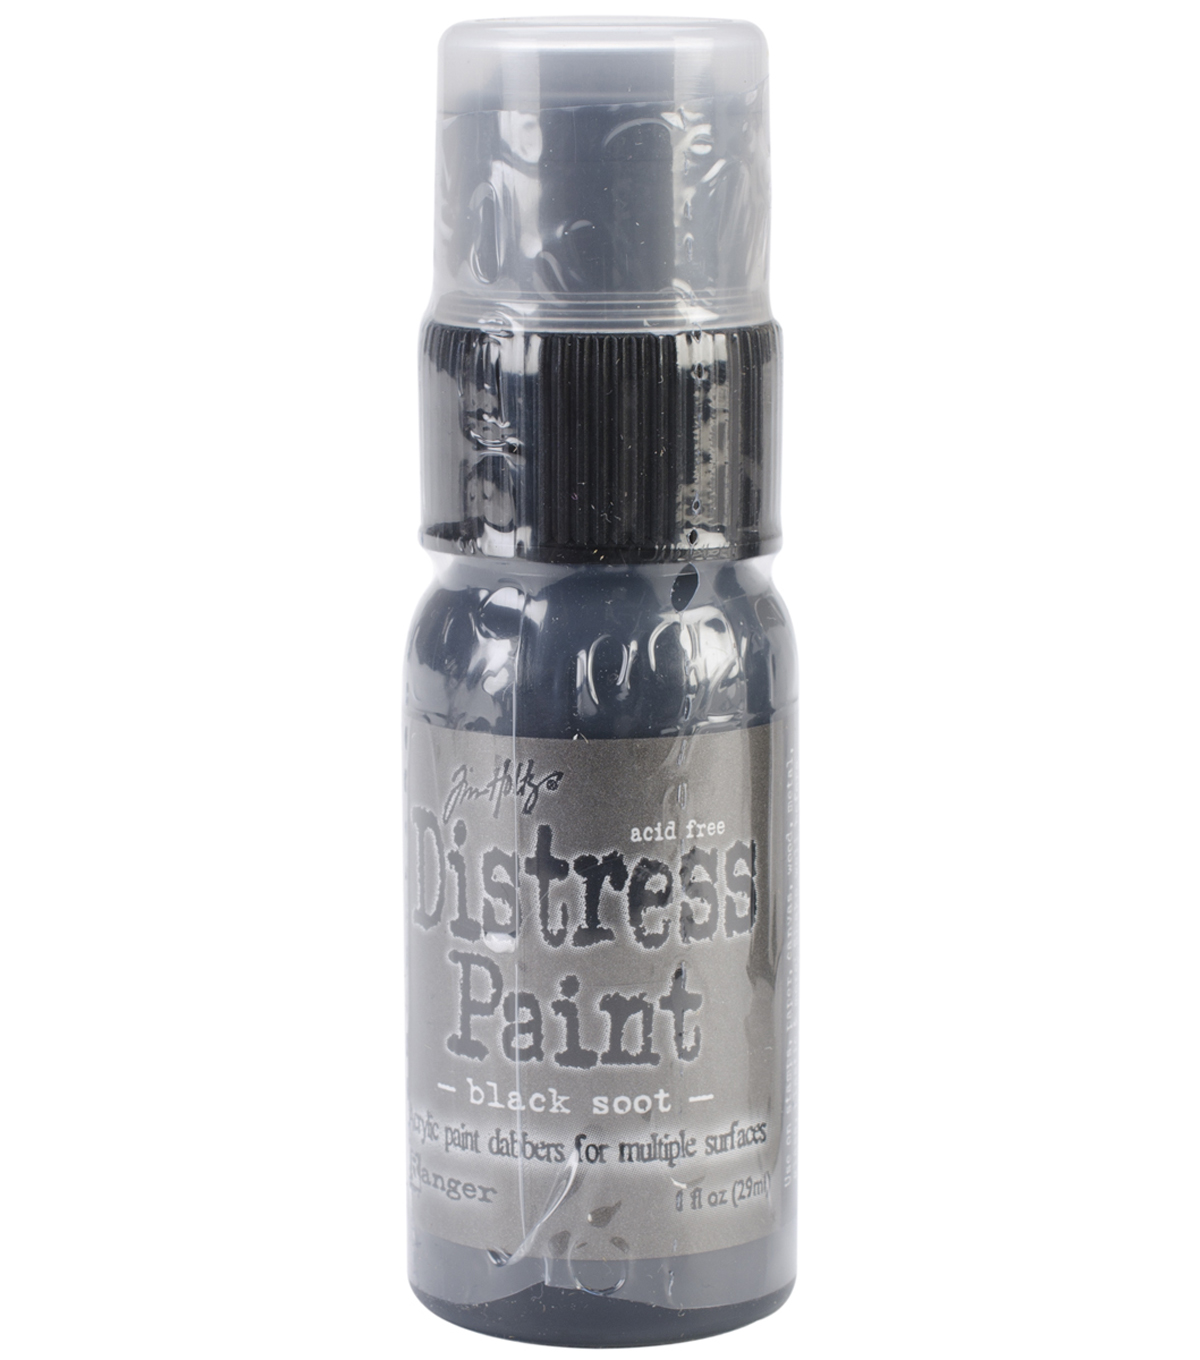 Tim Holtz Distress Paints 1oz Bottle